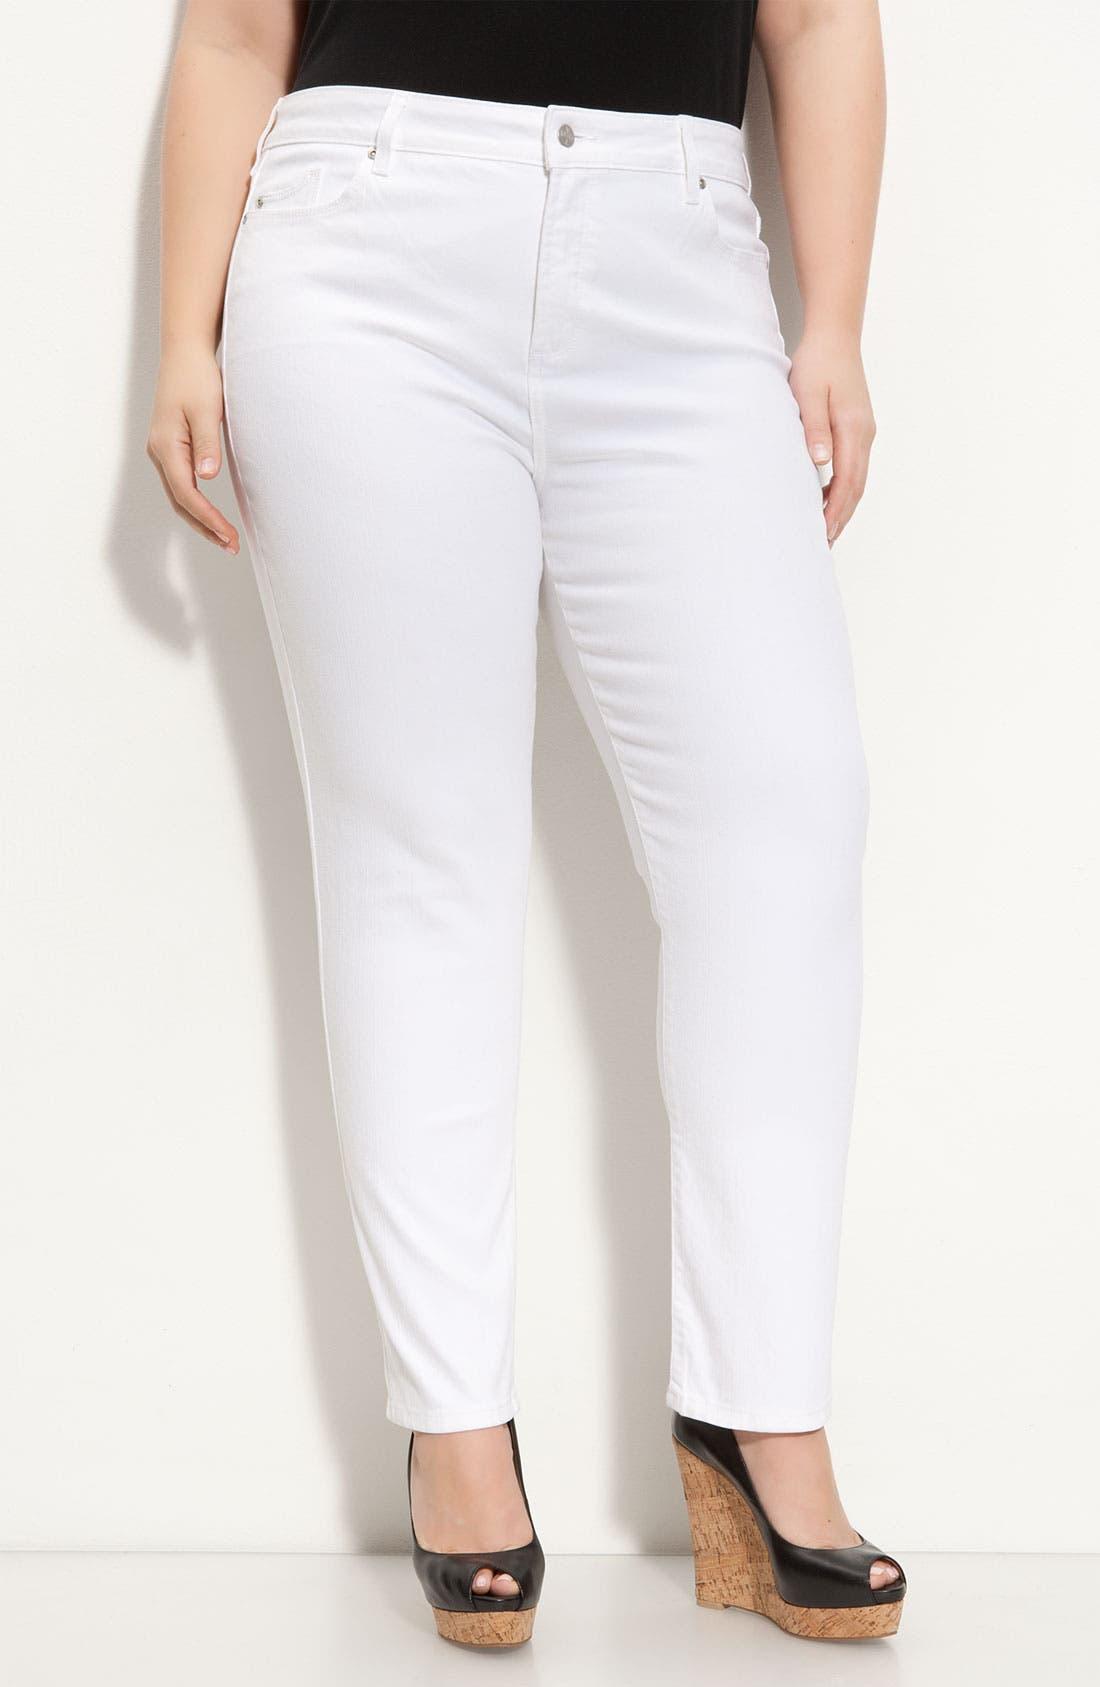 Alternate Image 1 Selected - NYDJ 'Alisha' Skinny Stretch Jeans (Plus)